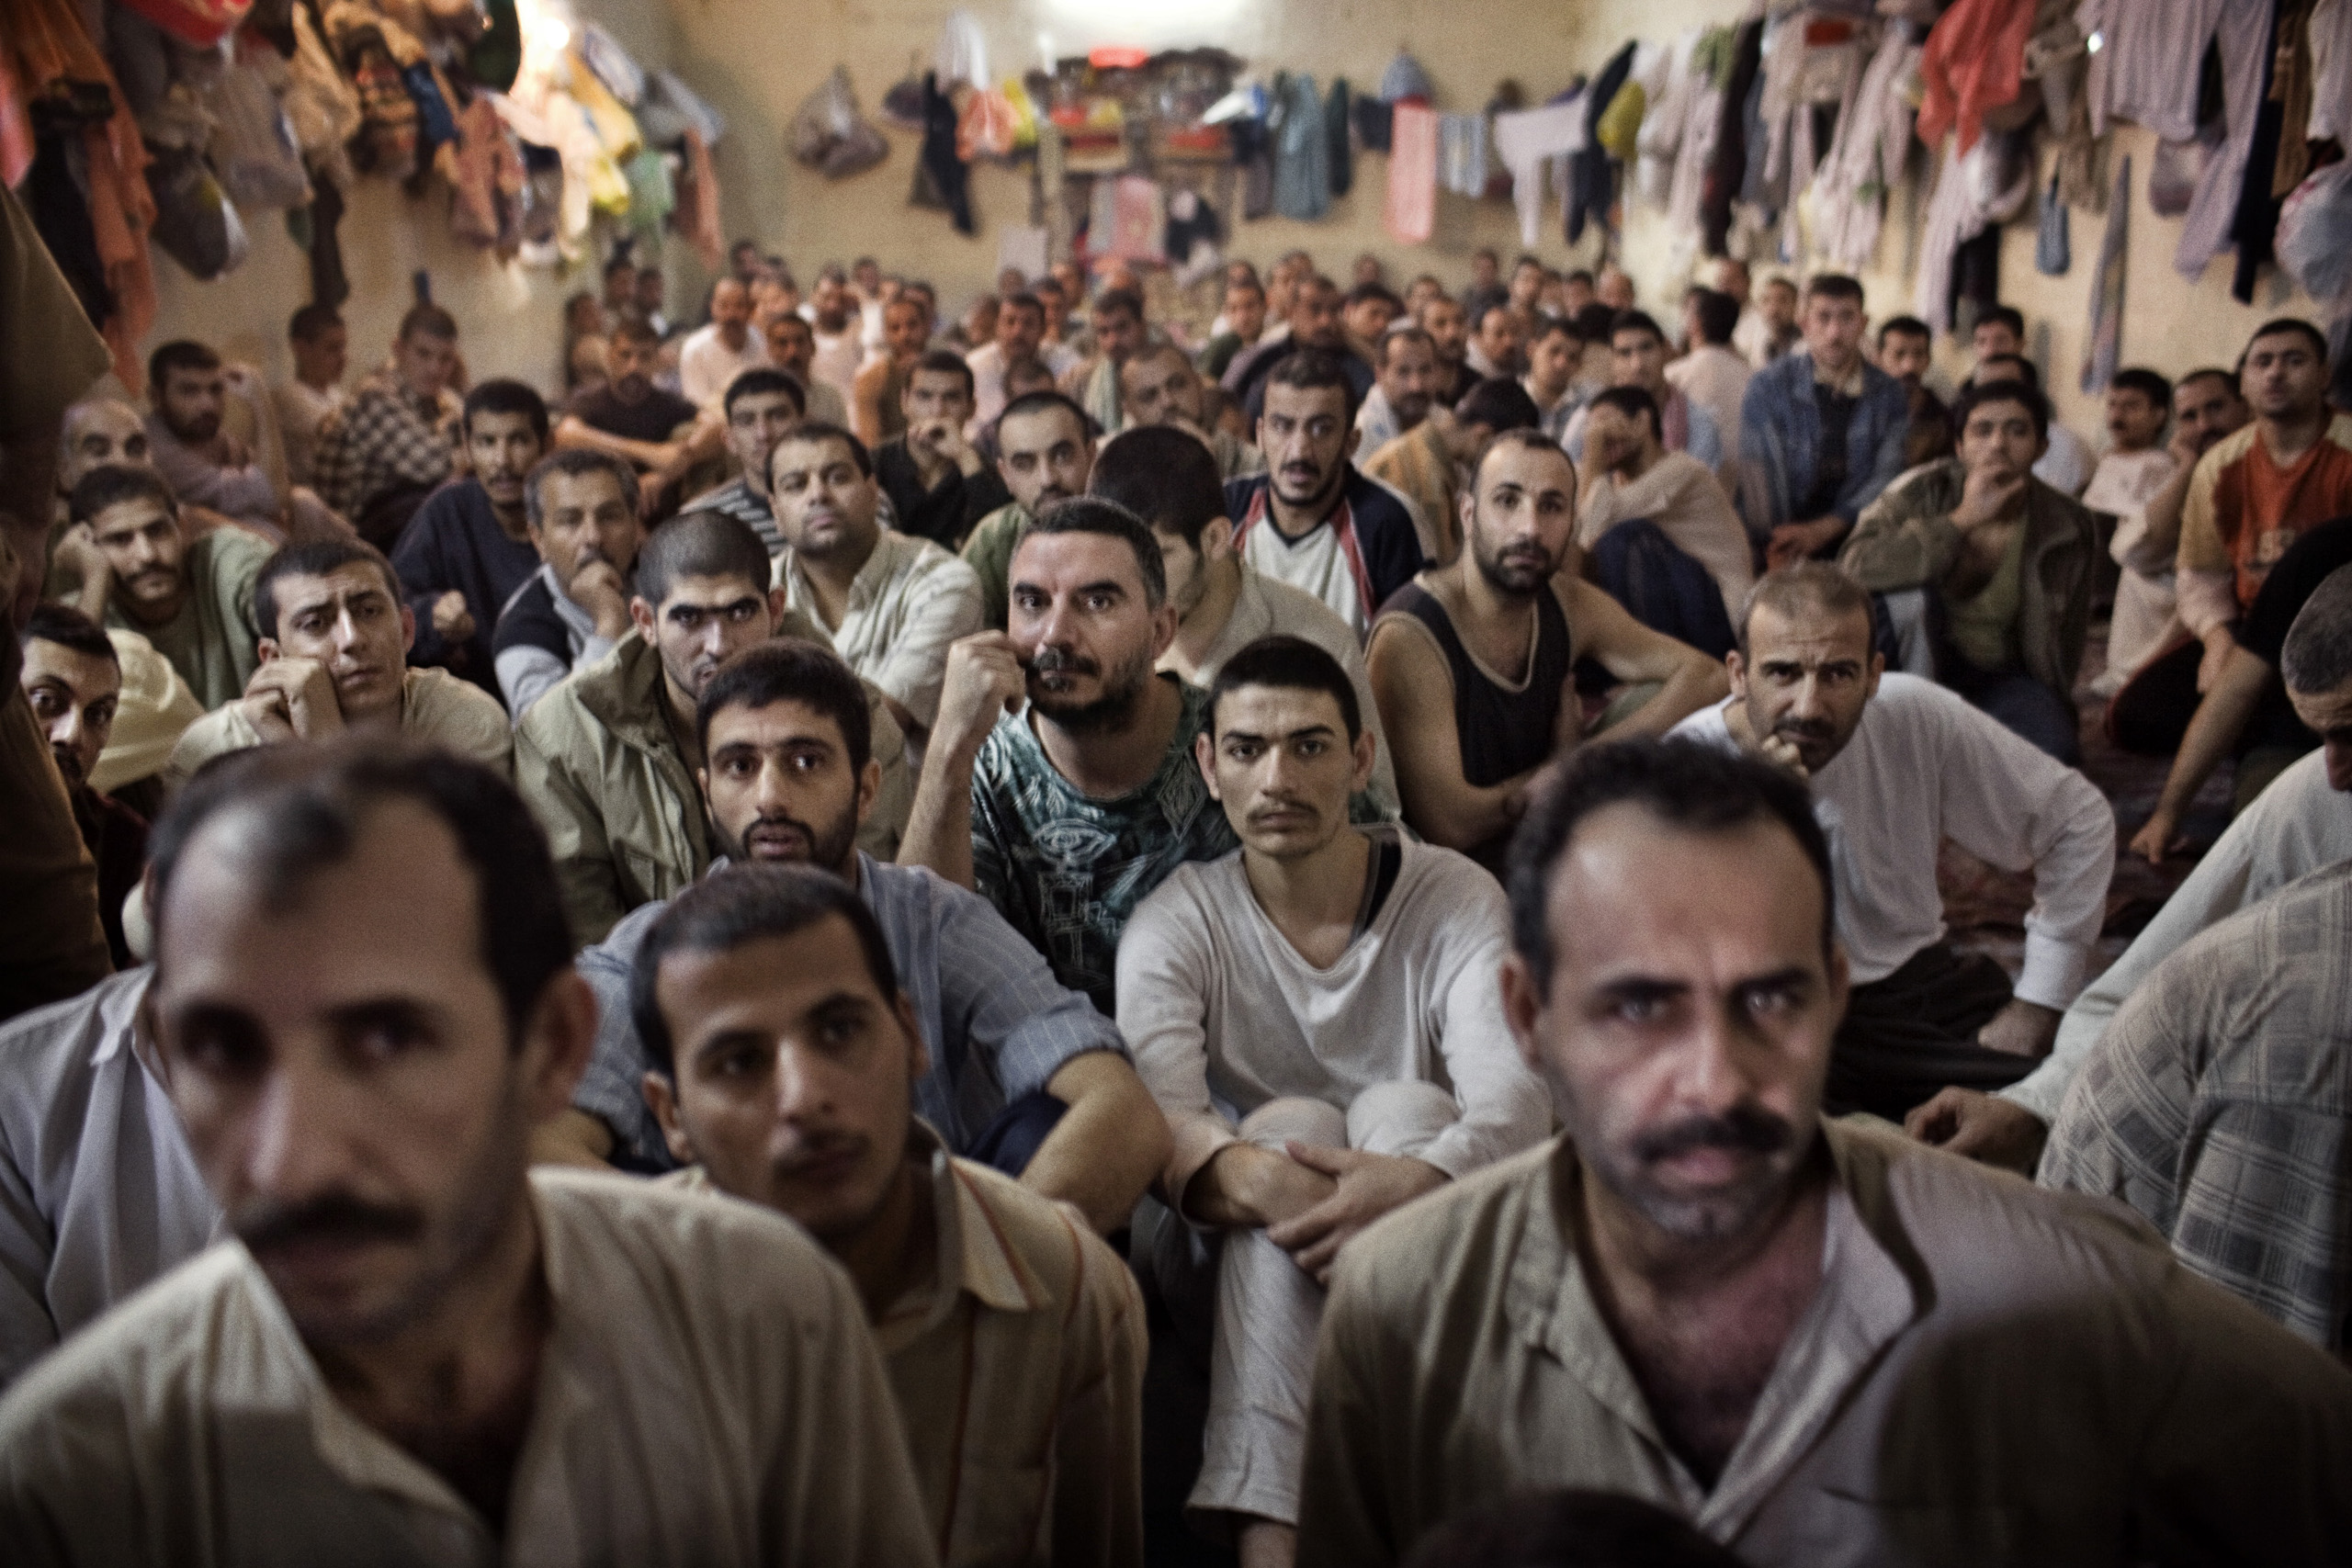 Iraqi prisoners are held in an overcrowded Interior Ministry prison, detained by the feared Iraqi police commandos, Wolf Brigade, an almost exclusively Shi'ite counter-insurgency unit, Baghdad, Iraq, Nov. 30, 2005.